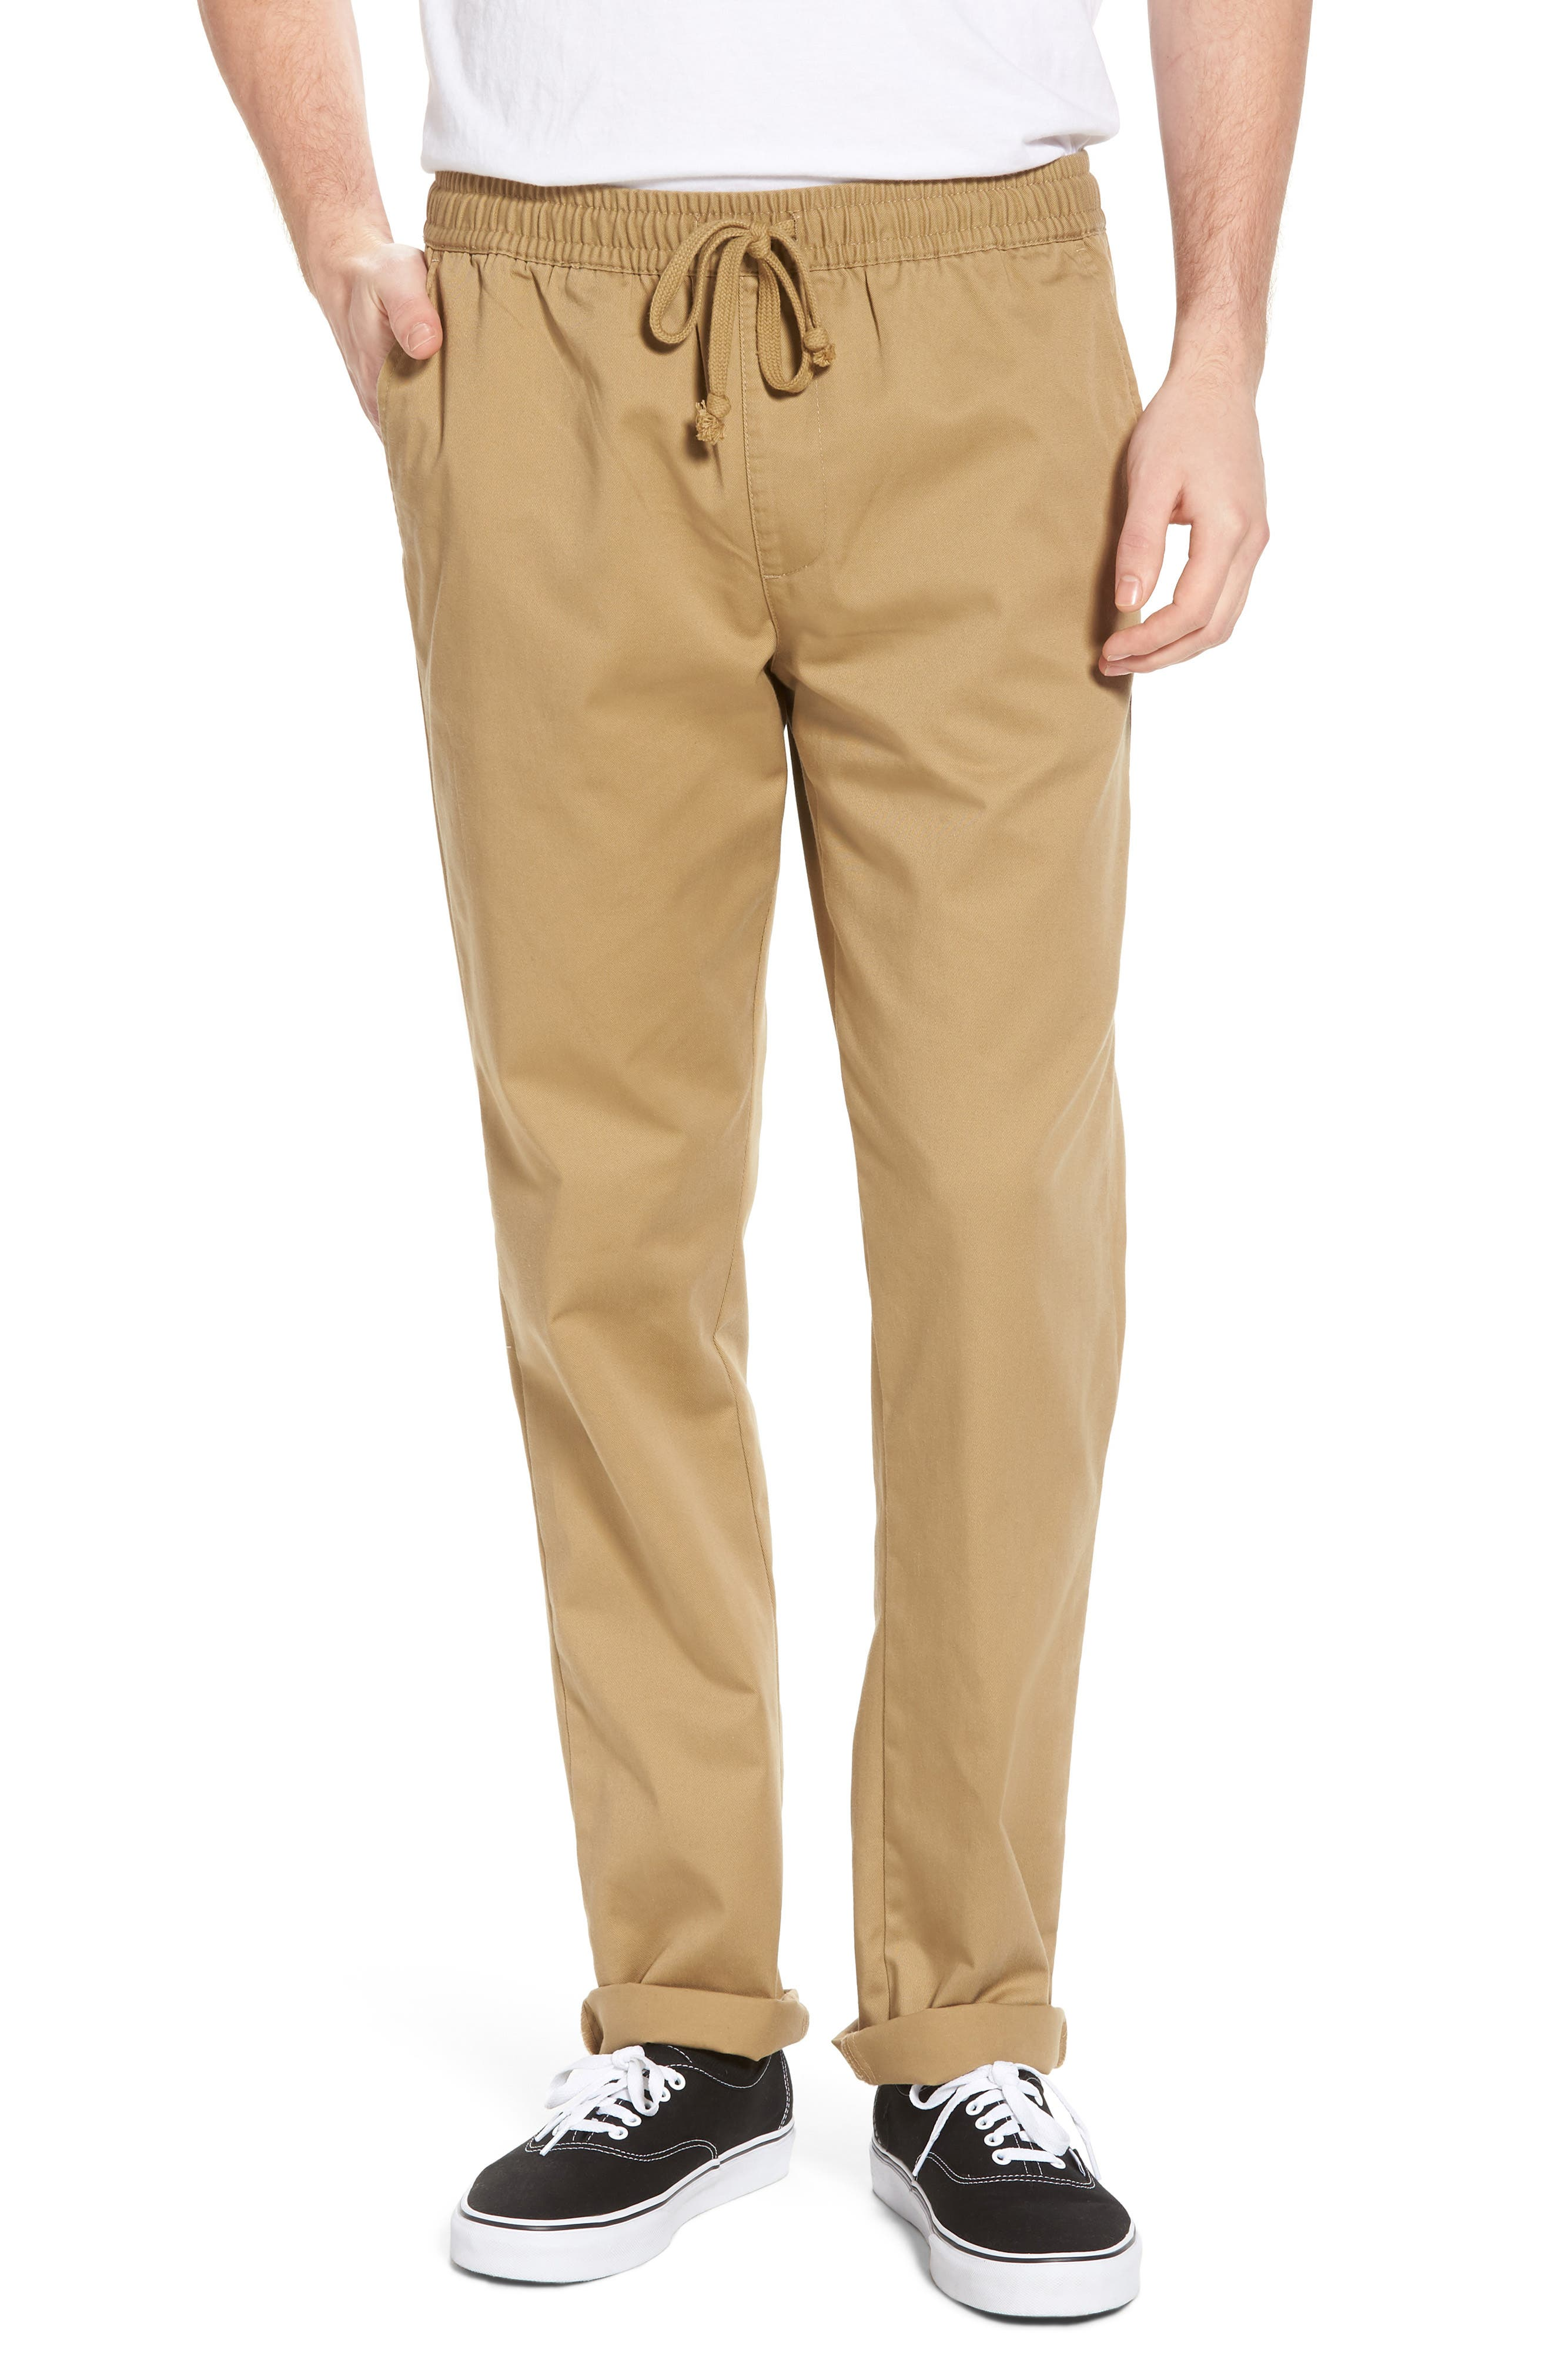 A.T. Dayshift Pants,                         Main,                         color, Dark Sand